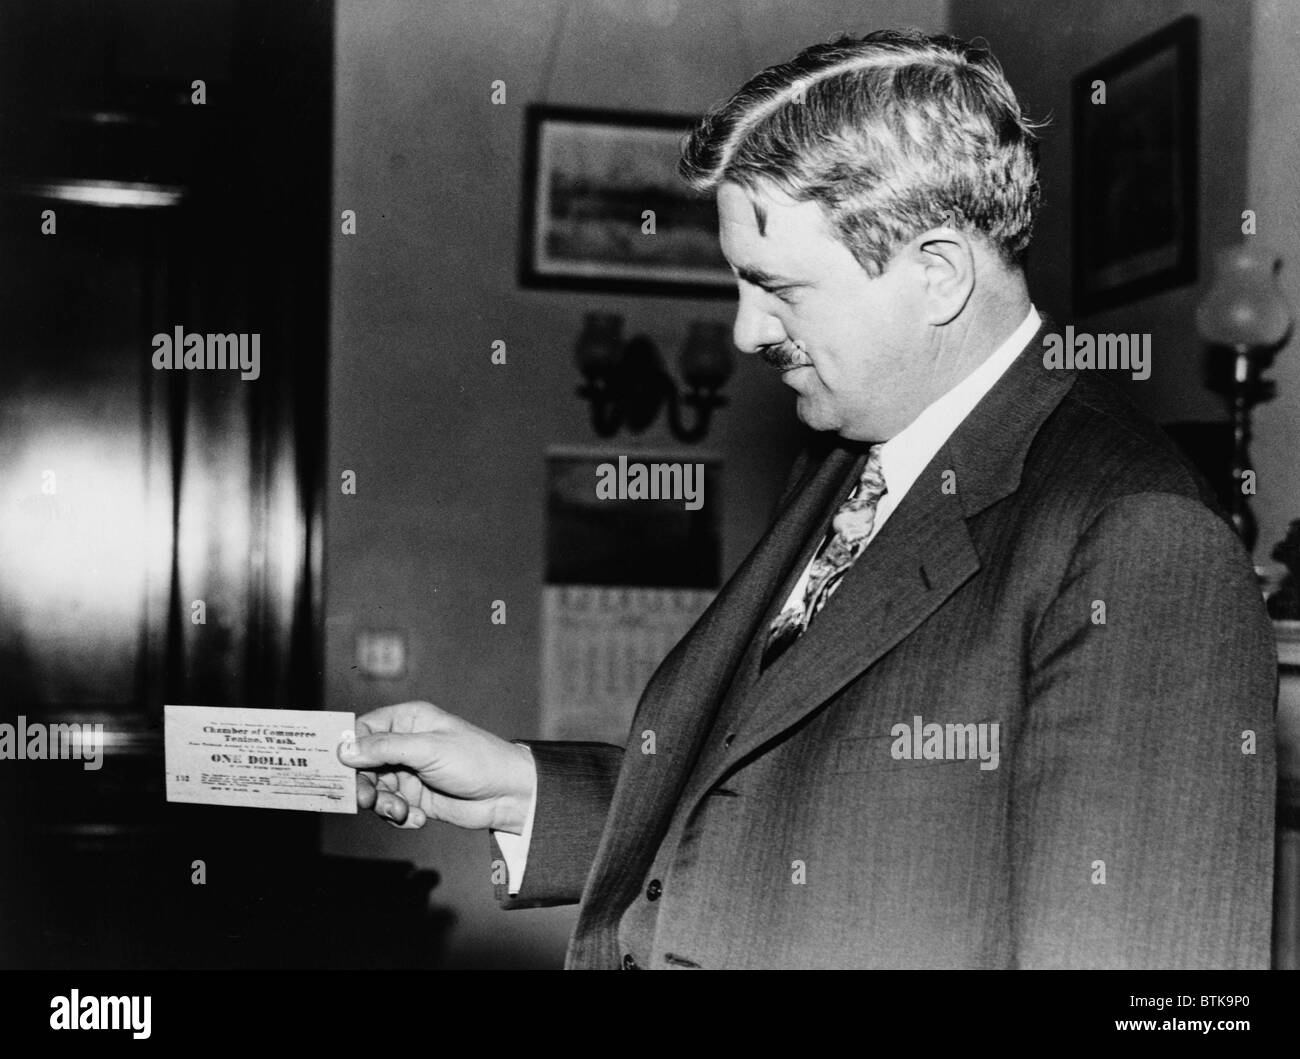 Senator Clarence C. Dill of Washington state, holding one of the wooden dollars used by town of Tenino, Washington. - Stock Image